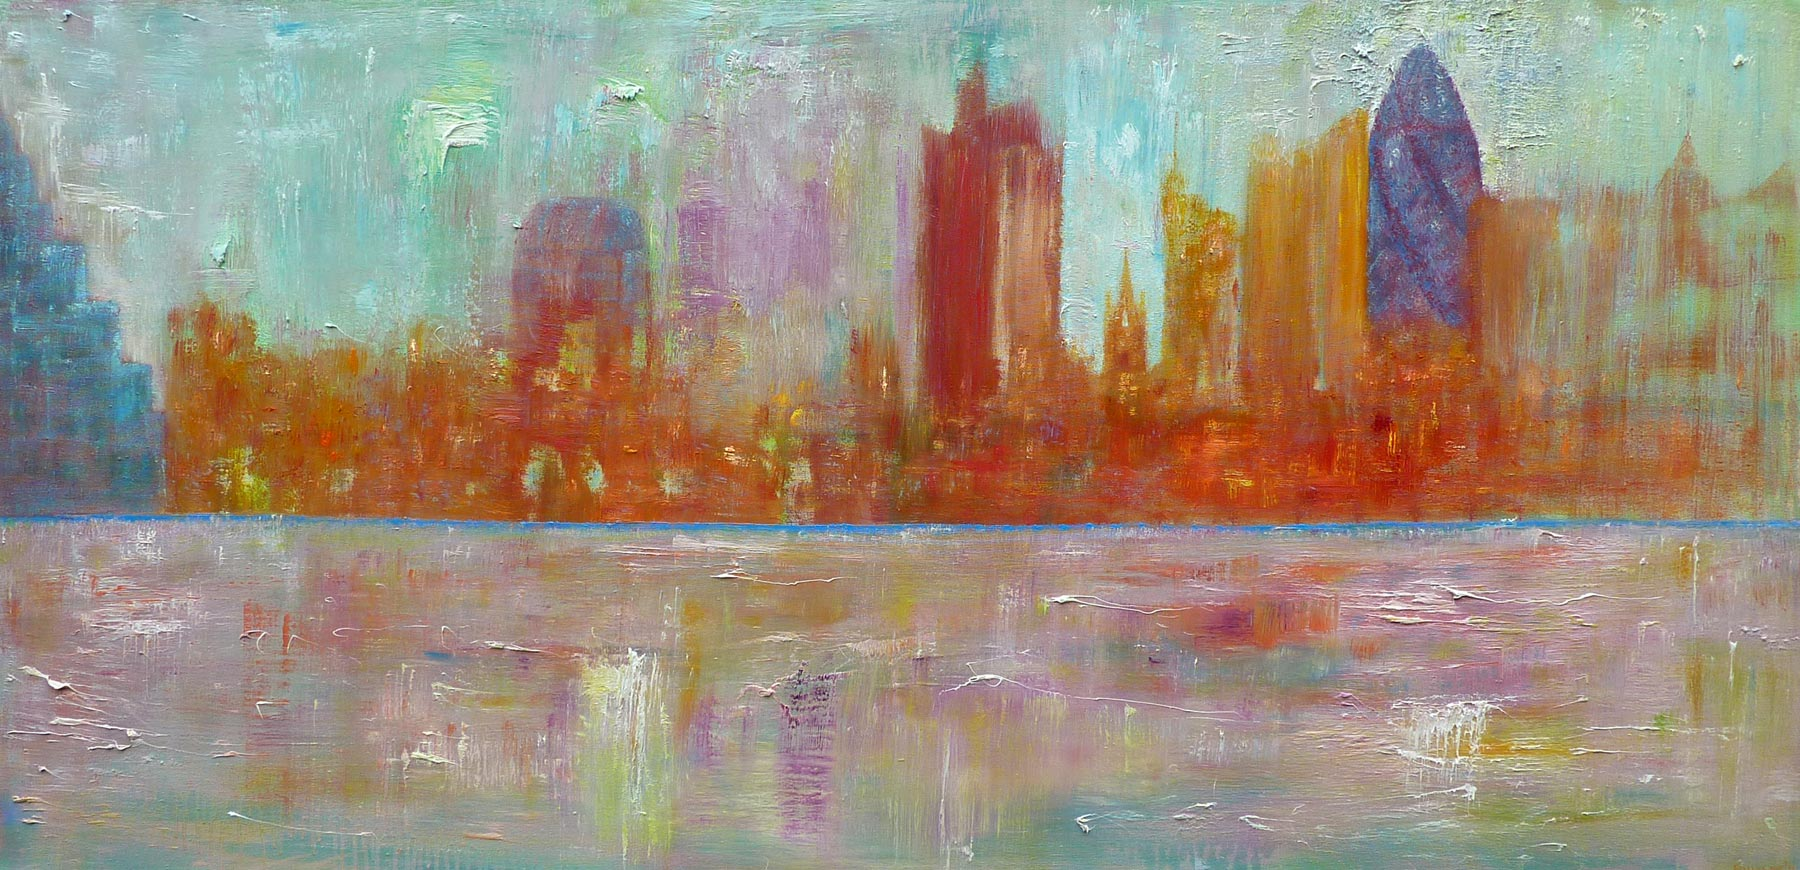 View From The Thames - Oil on Canvas 81cm x 155cm